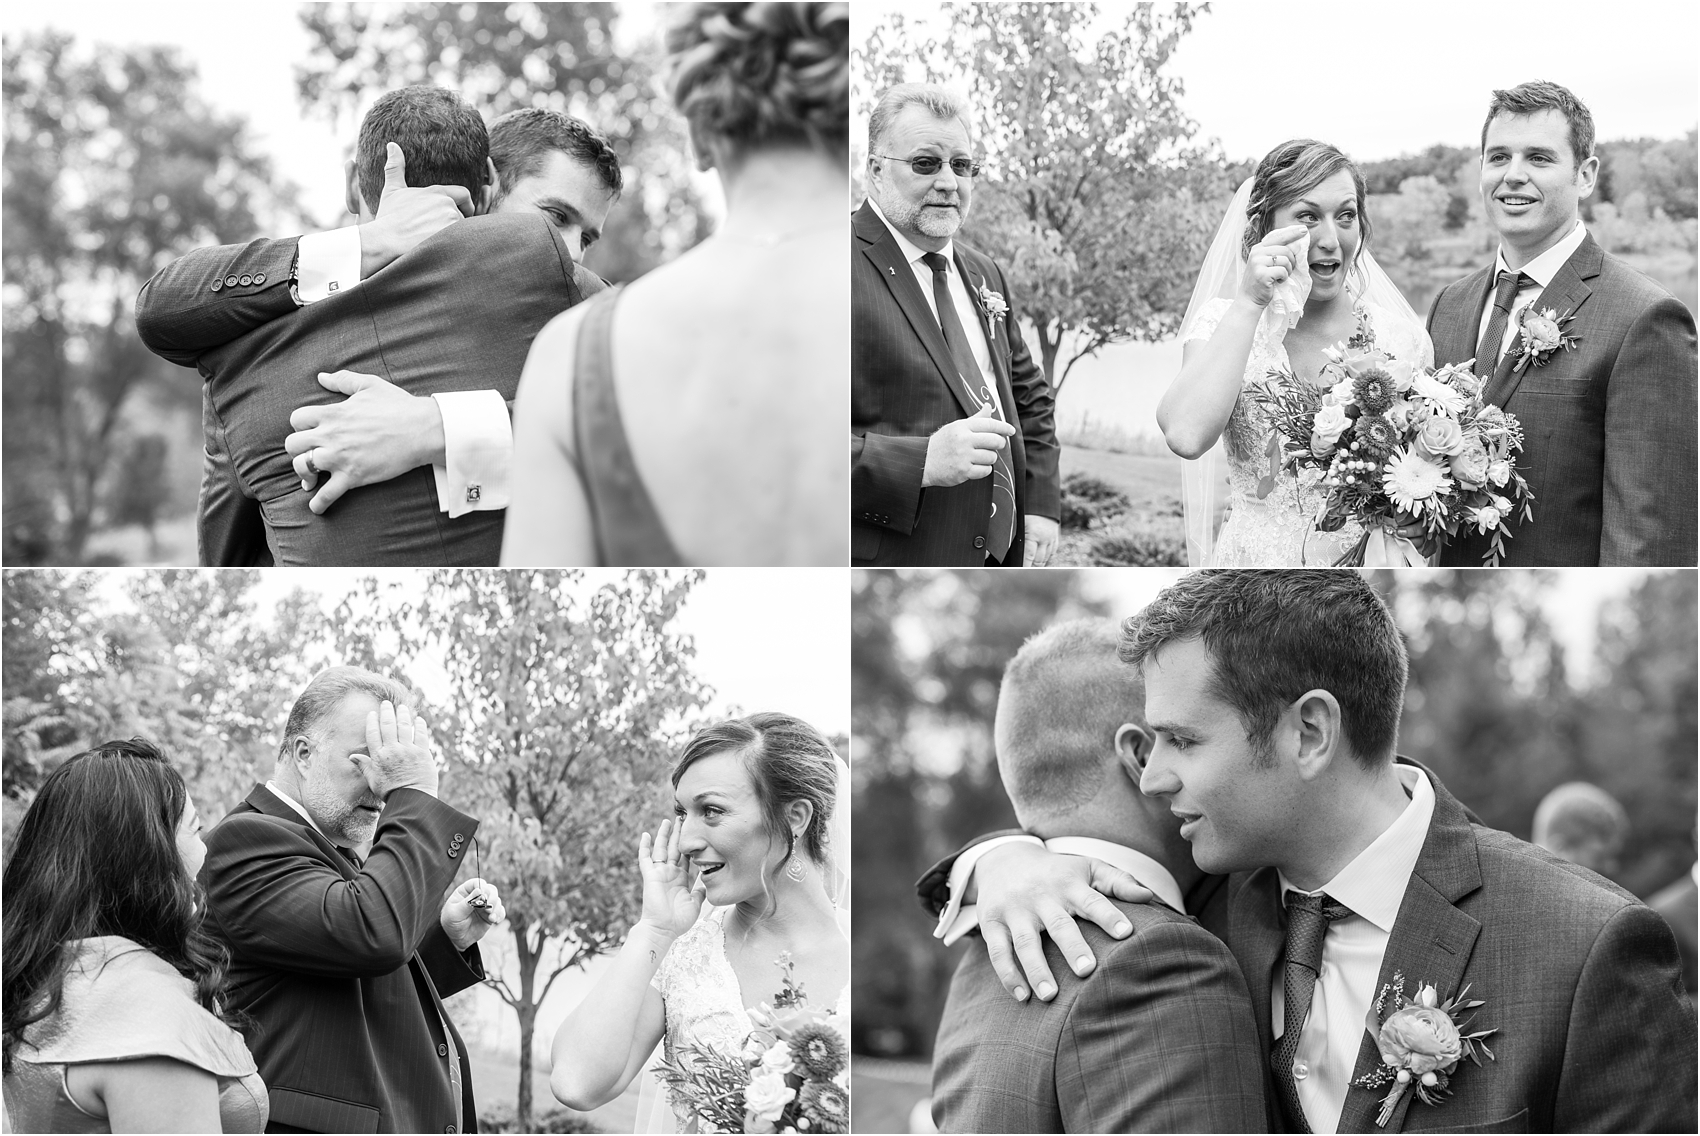 romantic-intimate-backyard-wedding-photos-at-private-estate-in-ann-arbor-mi-by-courtney-carolyn-photography_0113.jpg